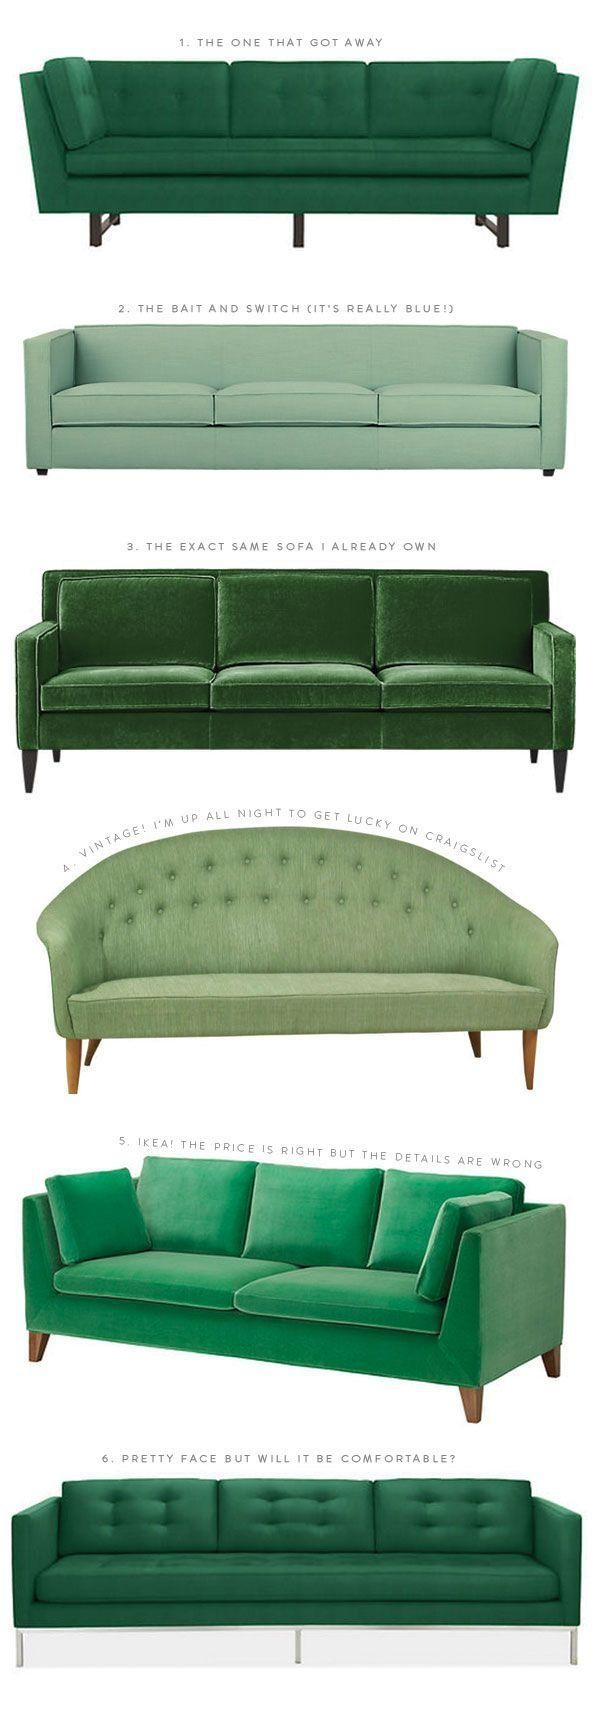 308 Best Sofas & Chairs - Ahhhhh! Images On Pinterest | Sofas within Mint Green Sofas